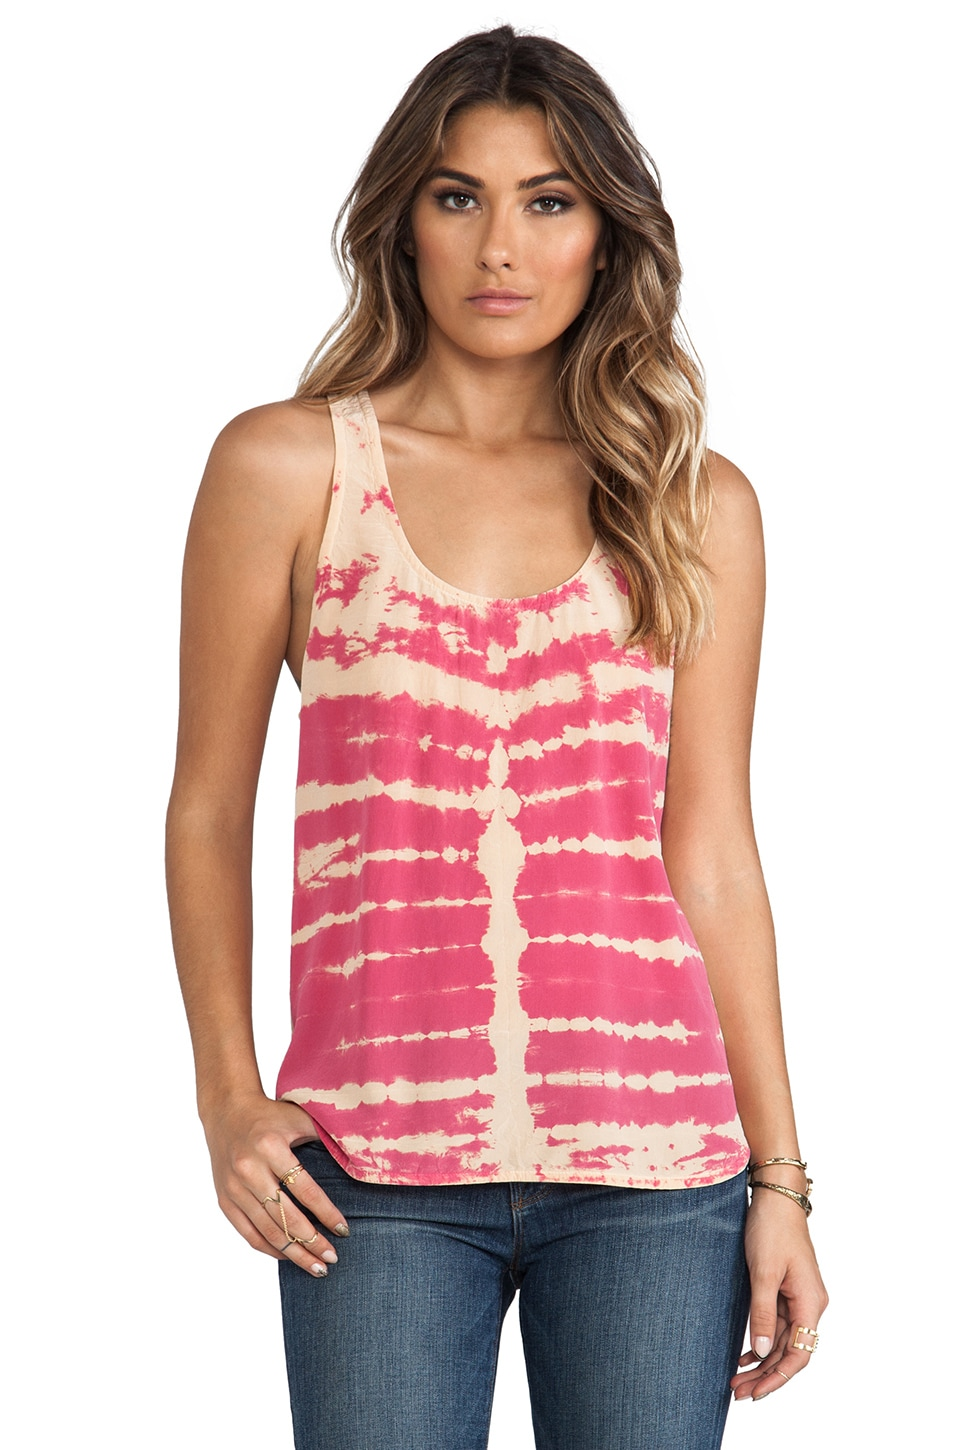 Gypsy 05 Racer Back Tank in Raspberry